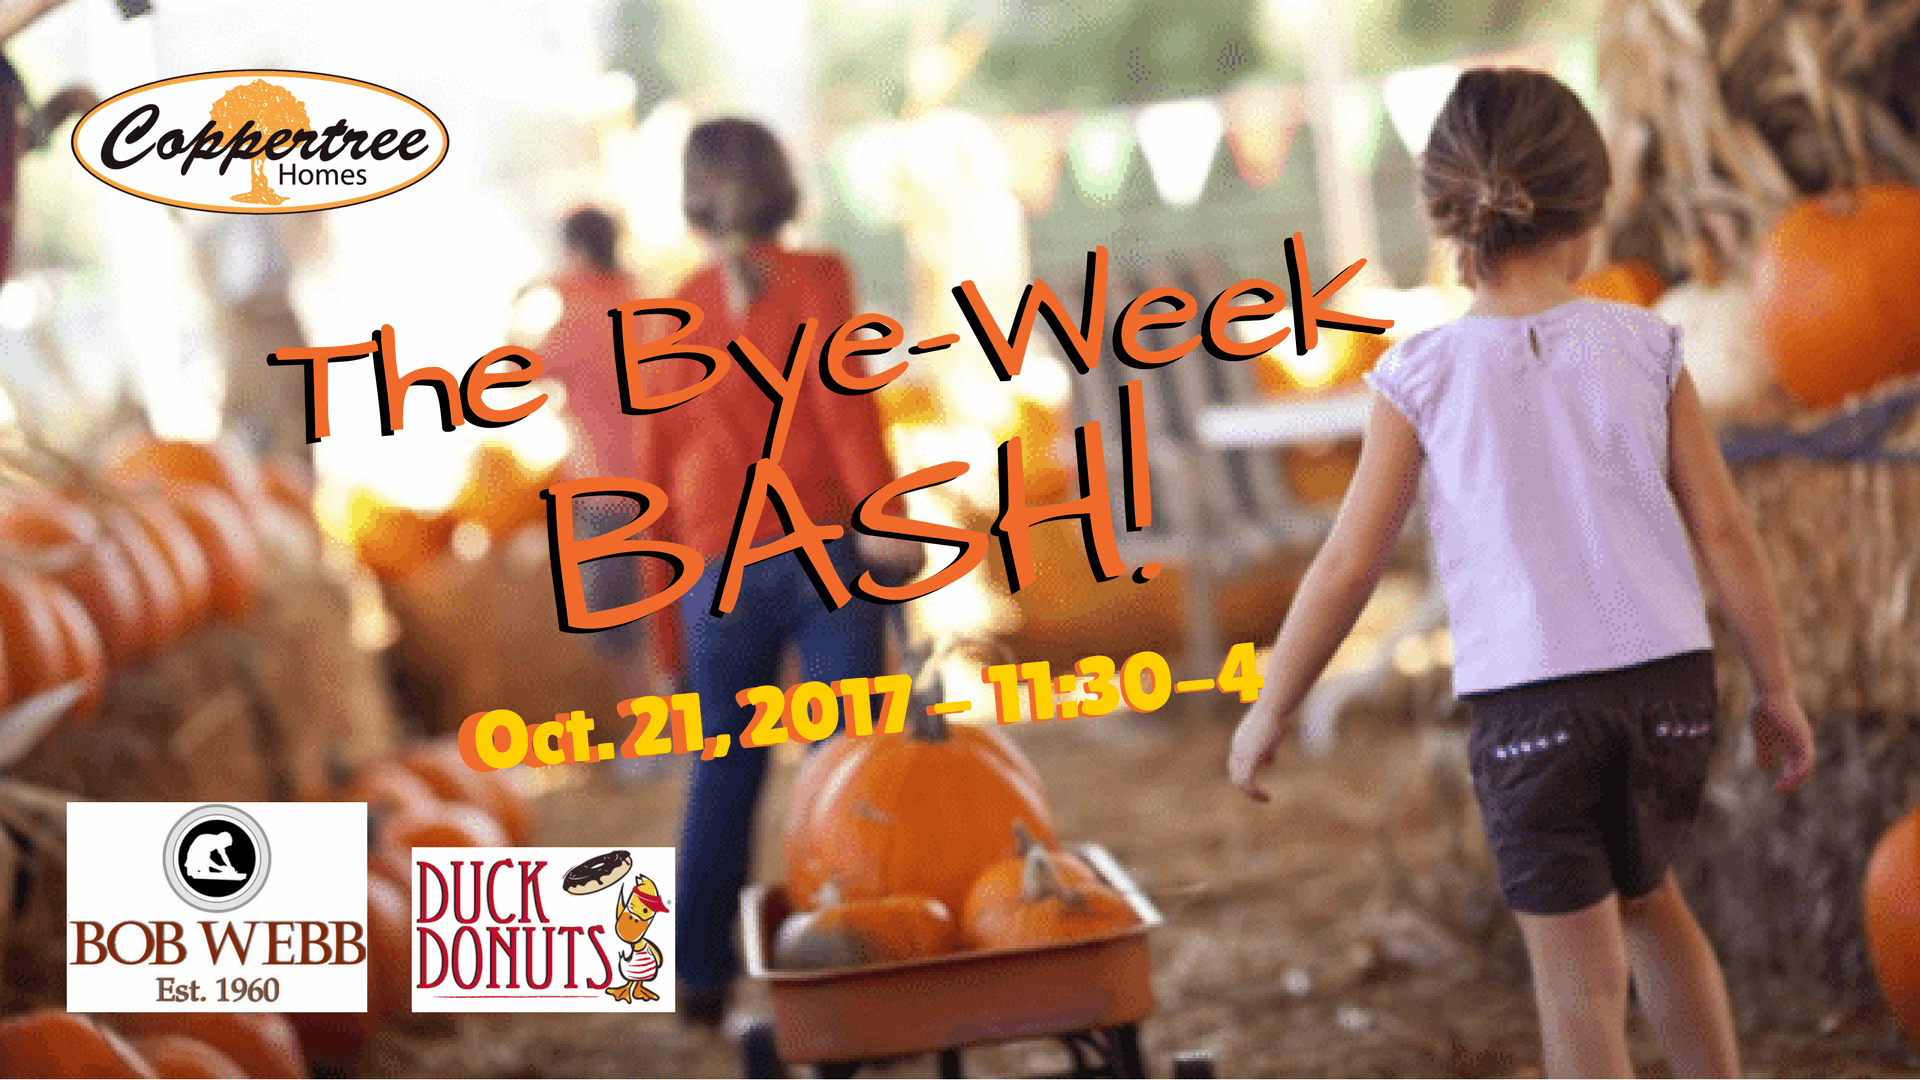 cth-the_bye_week_bash-fb-Event